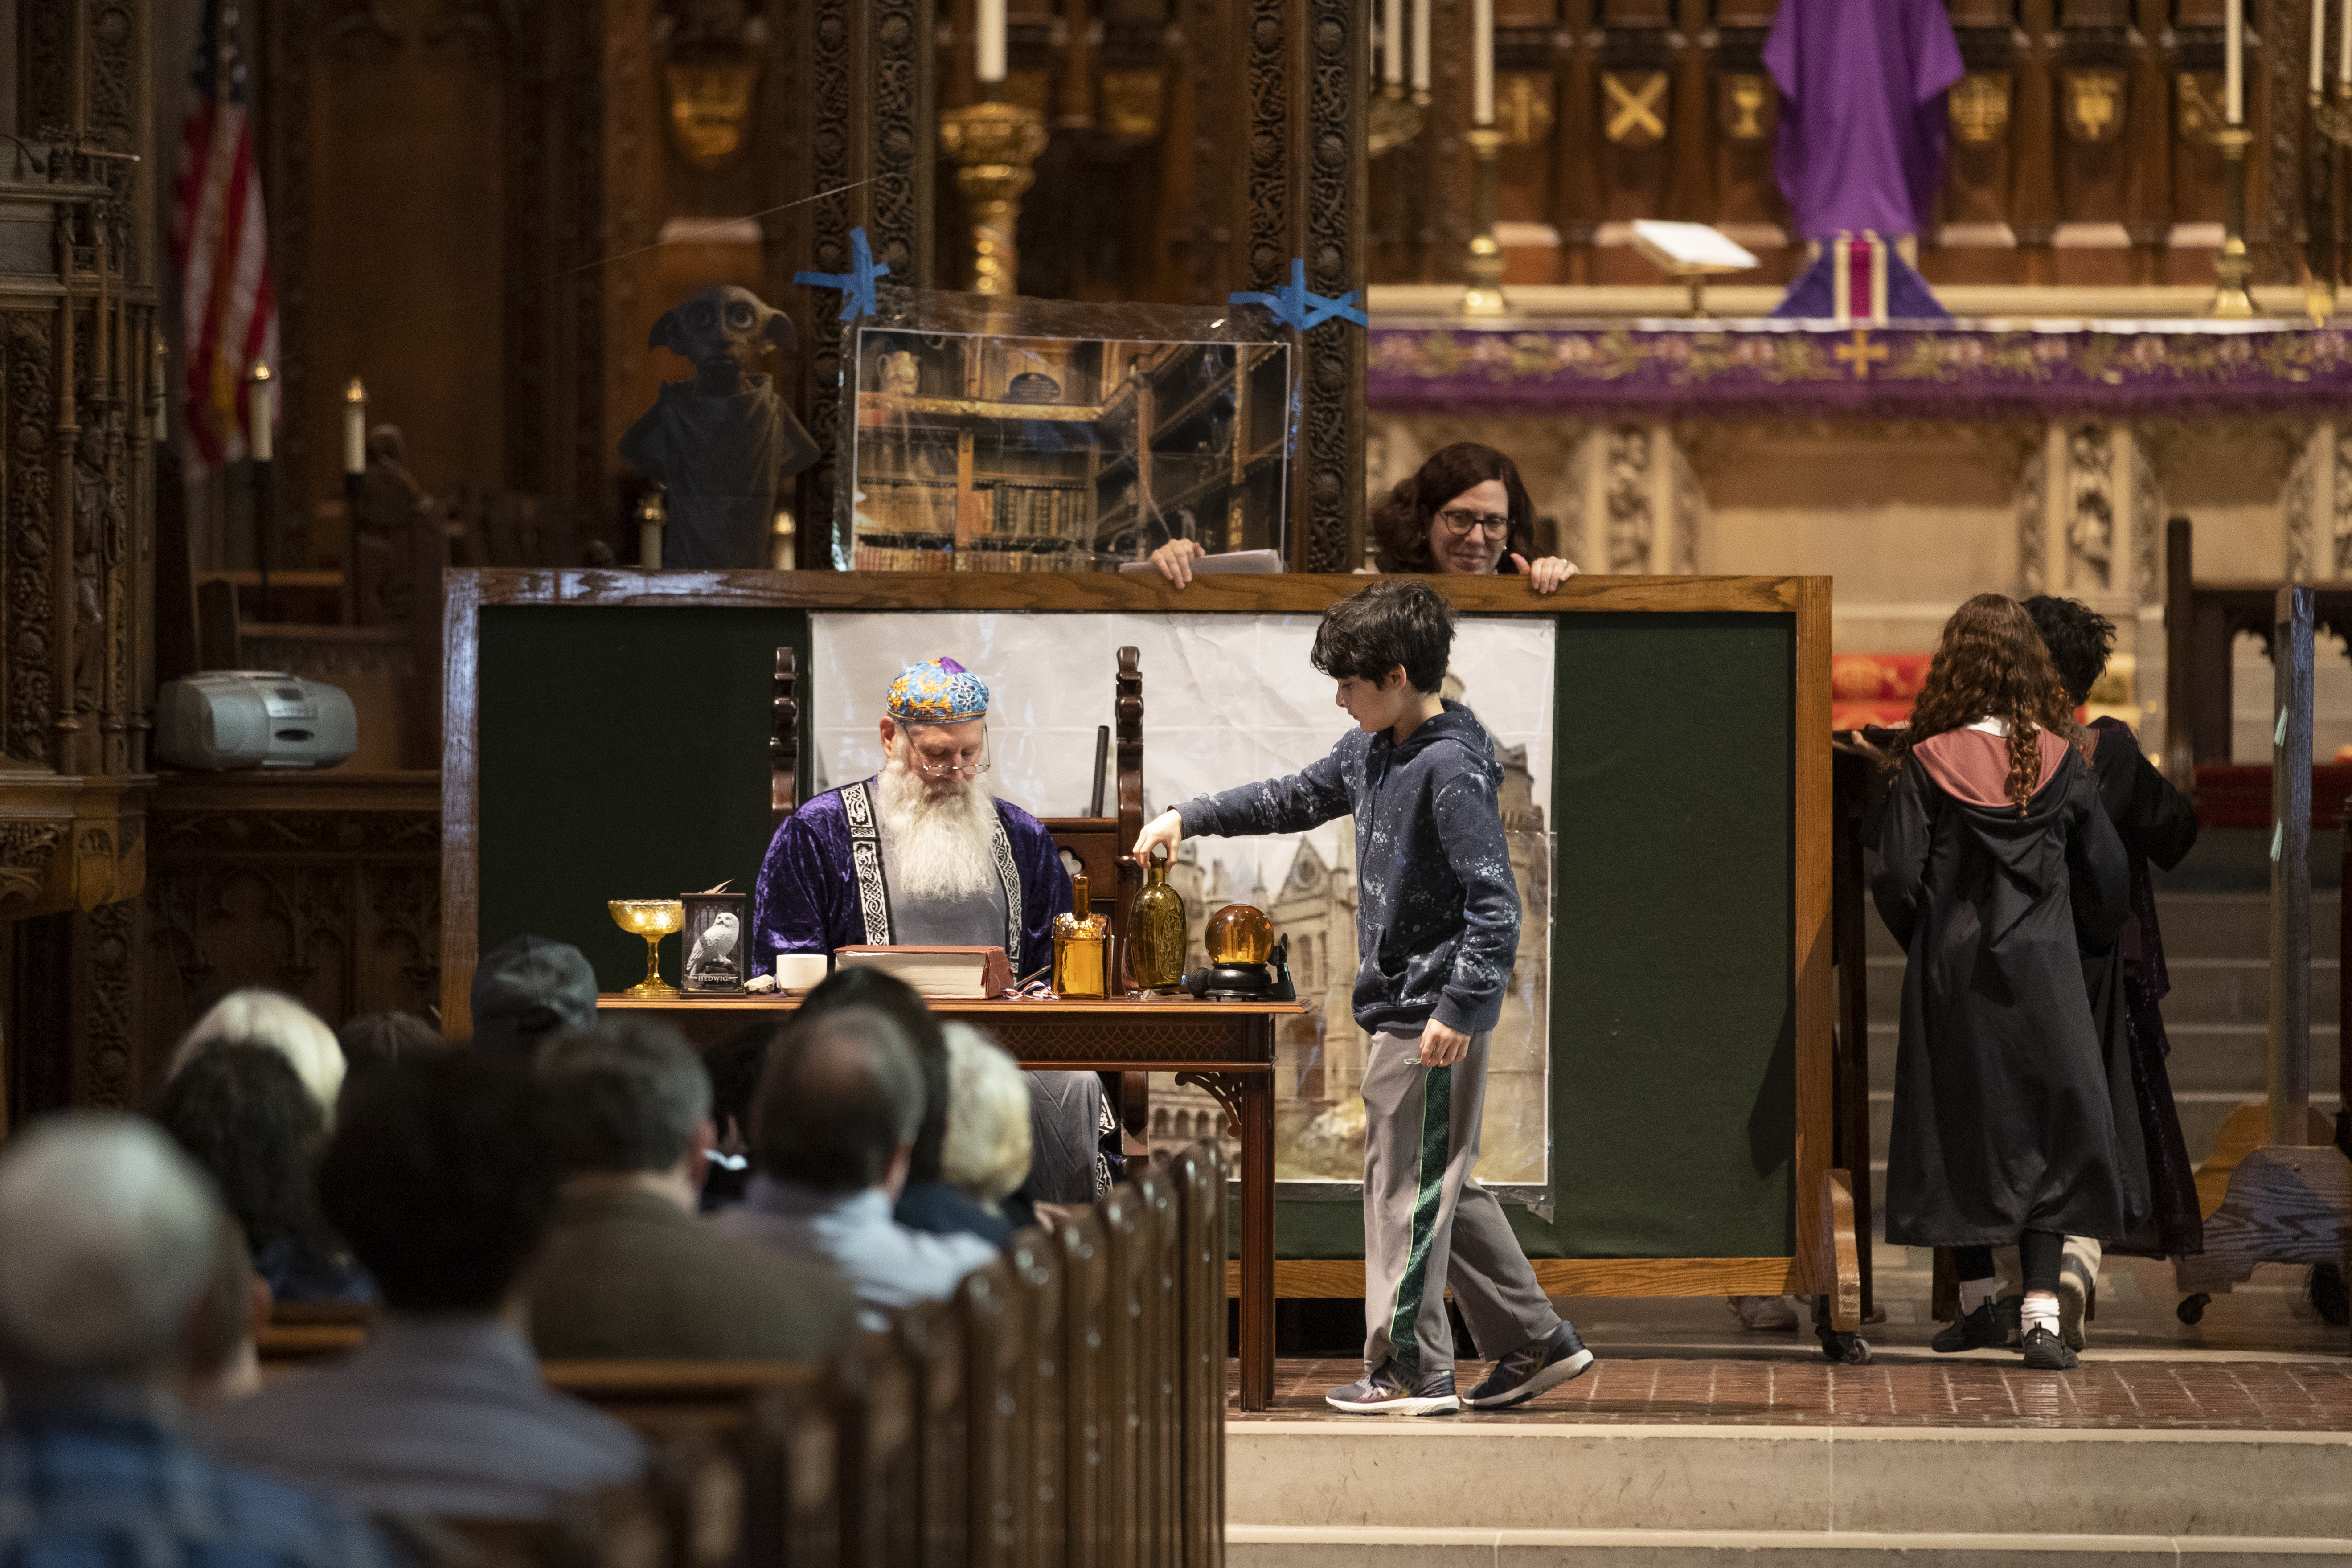 Members of Rodef Shalom and the Tree of Life congregations perform a Harry Potter themed Purim play at Calvary Episcopal Church. Tree of Life has assembled their congregation in the church since the terrorist attack on 10/27/2018.